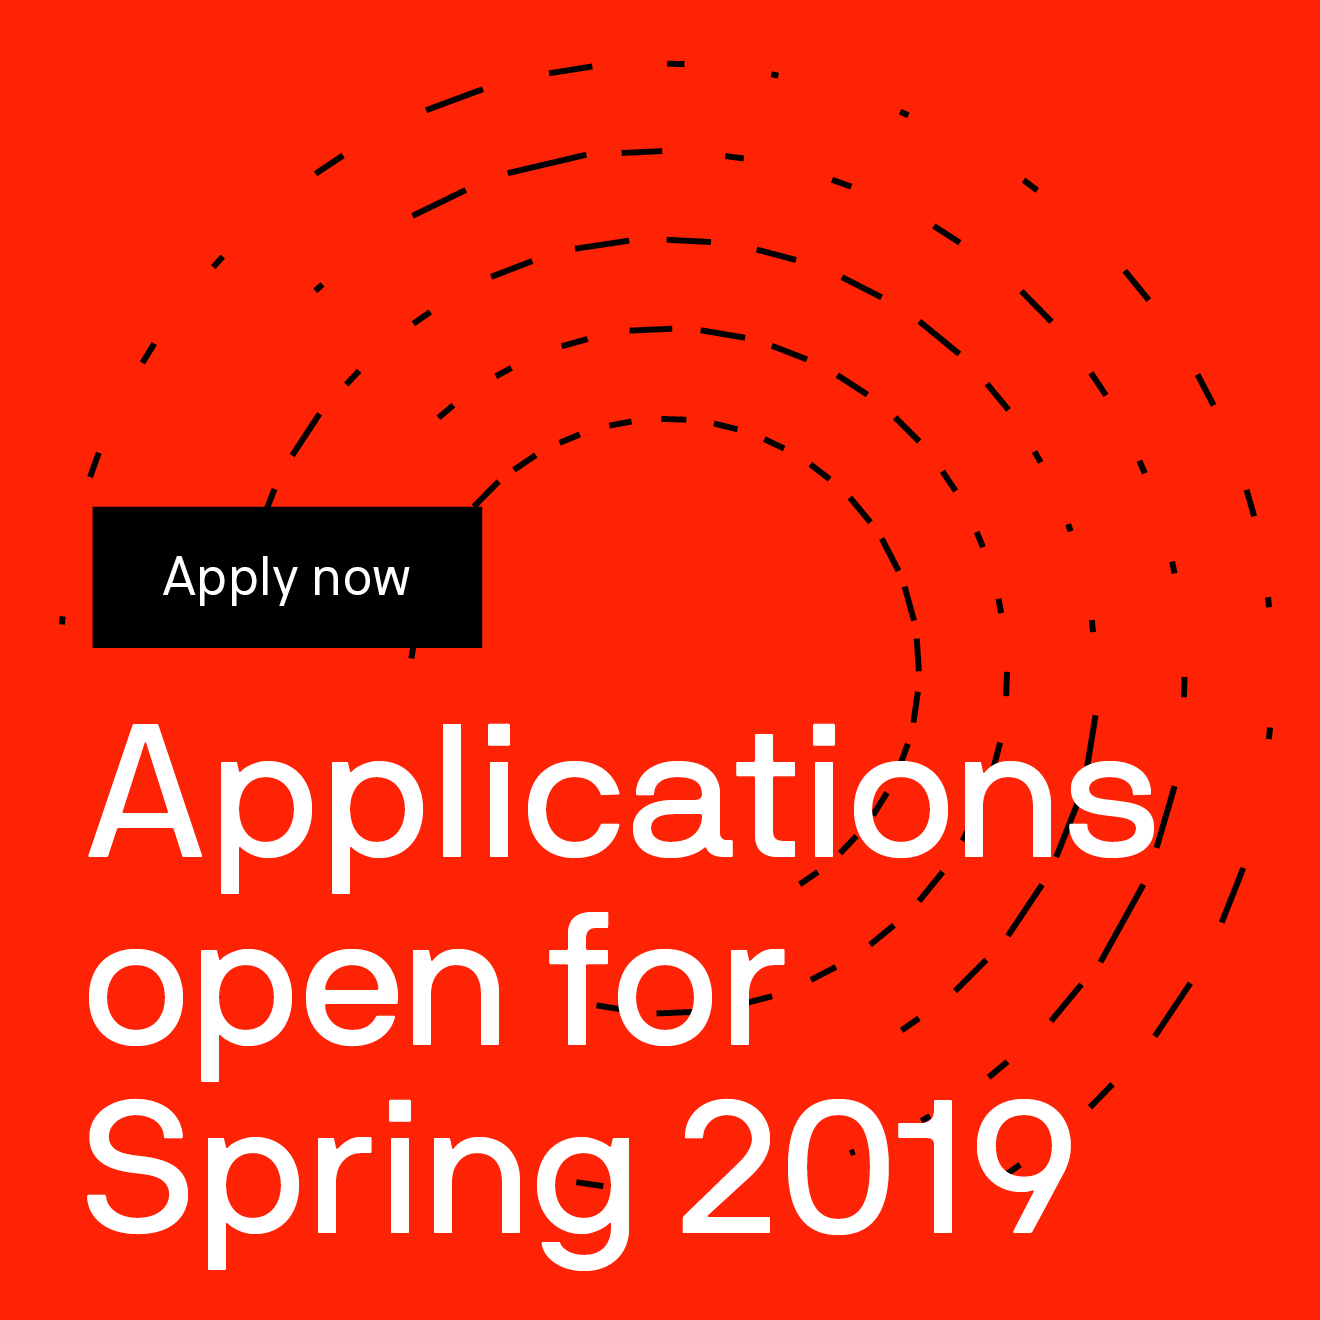 Applications open for Spring 2019 Apply now